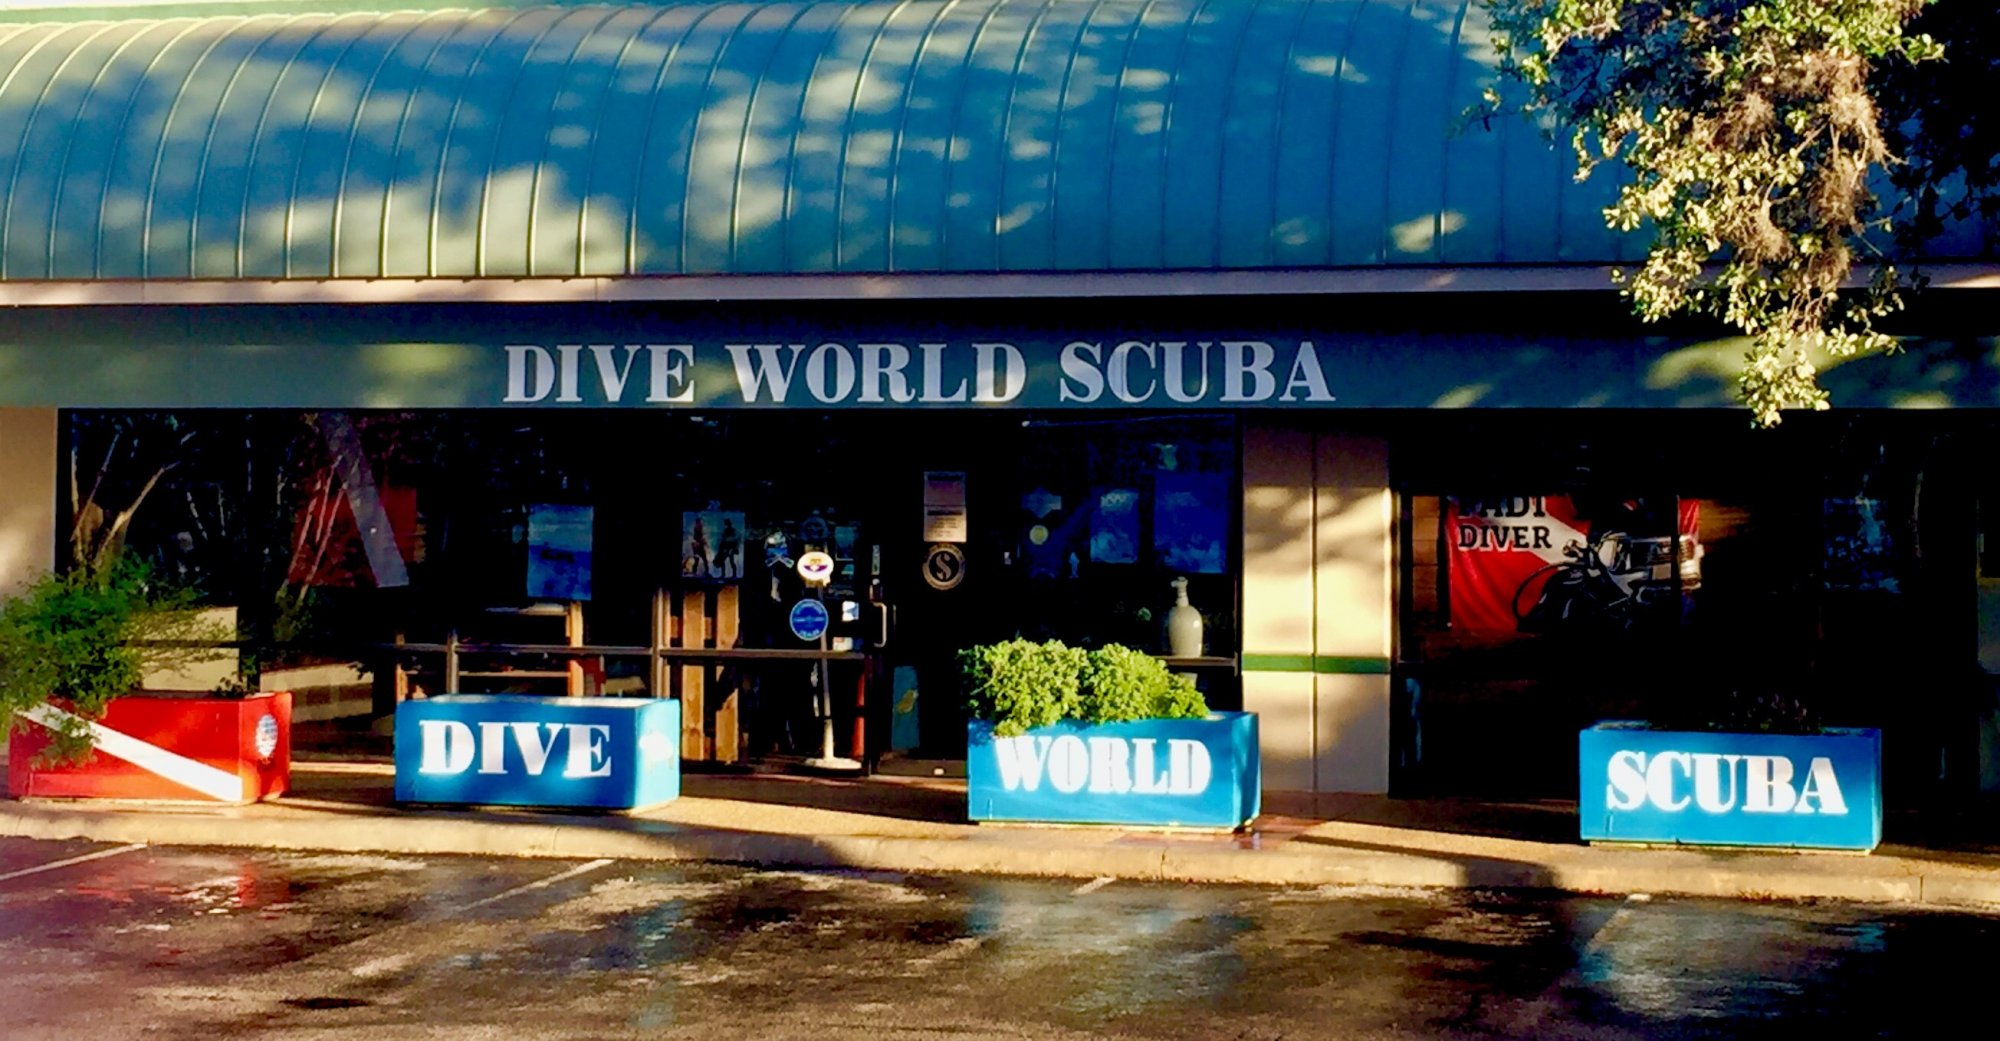 Dive World Scuba Thousand Oaks Storefront